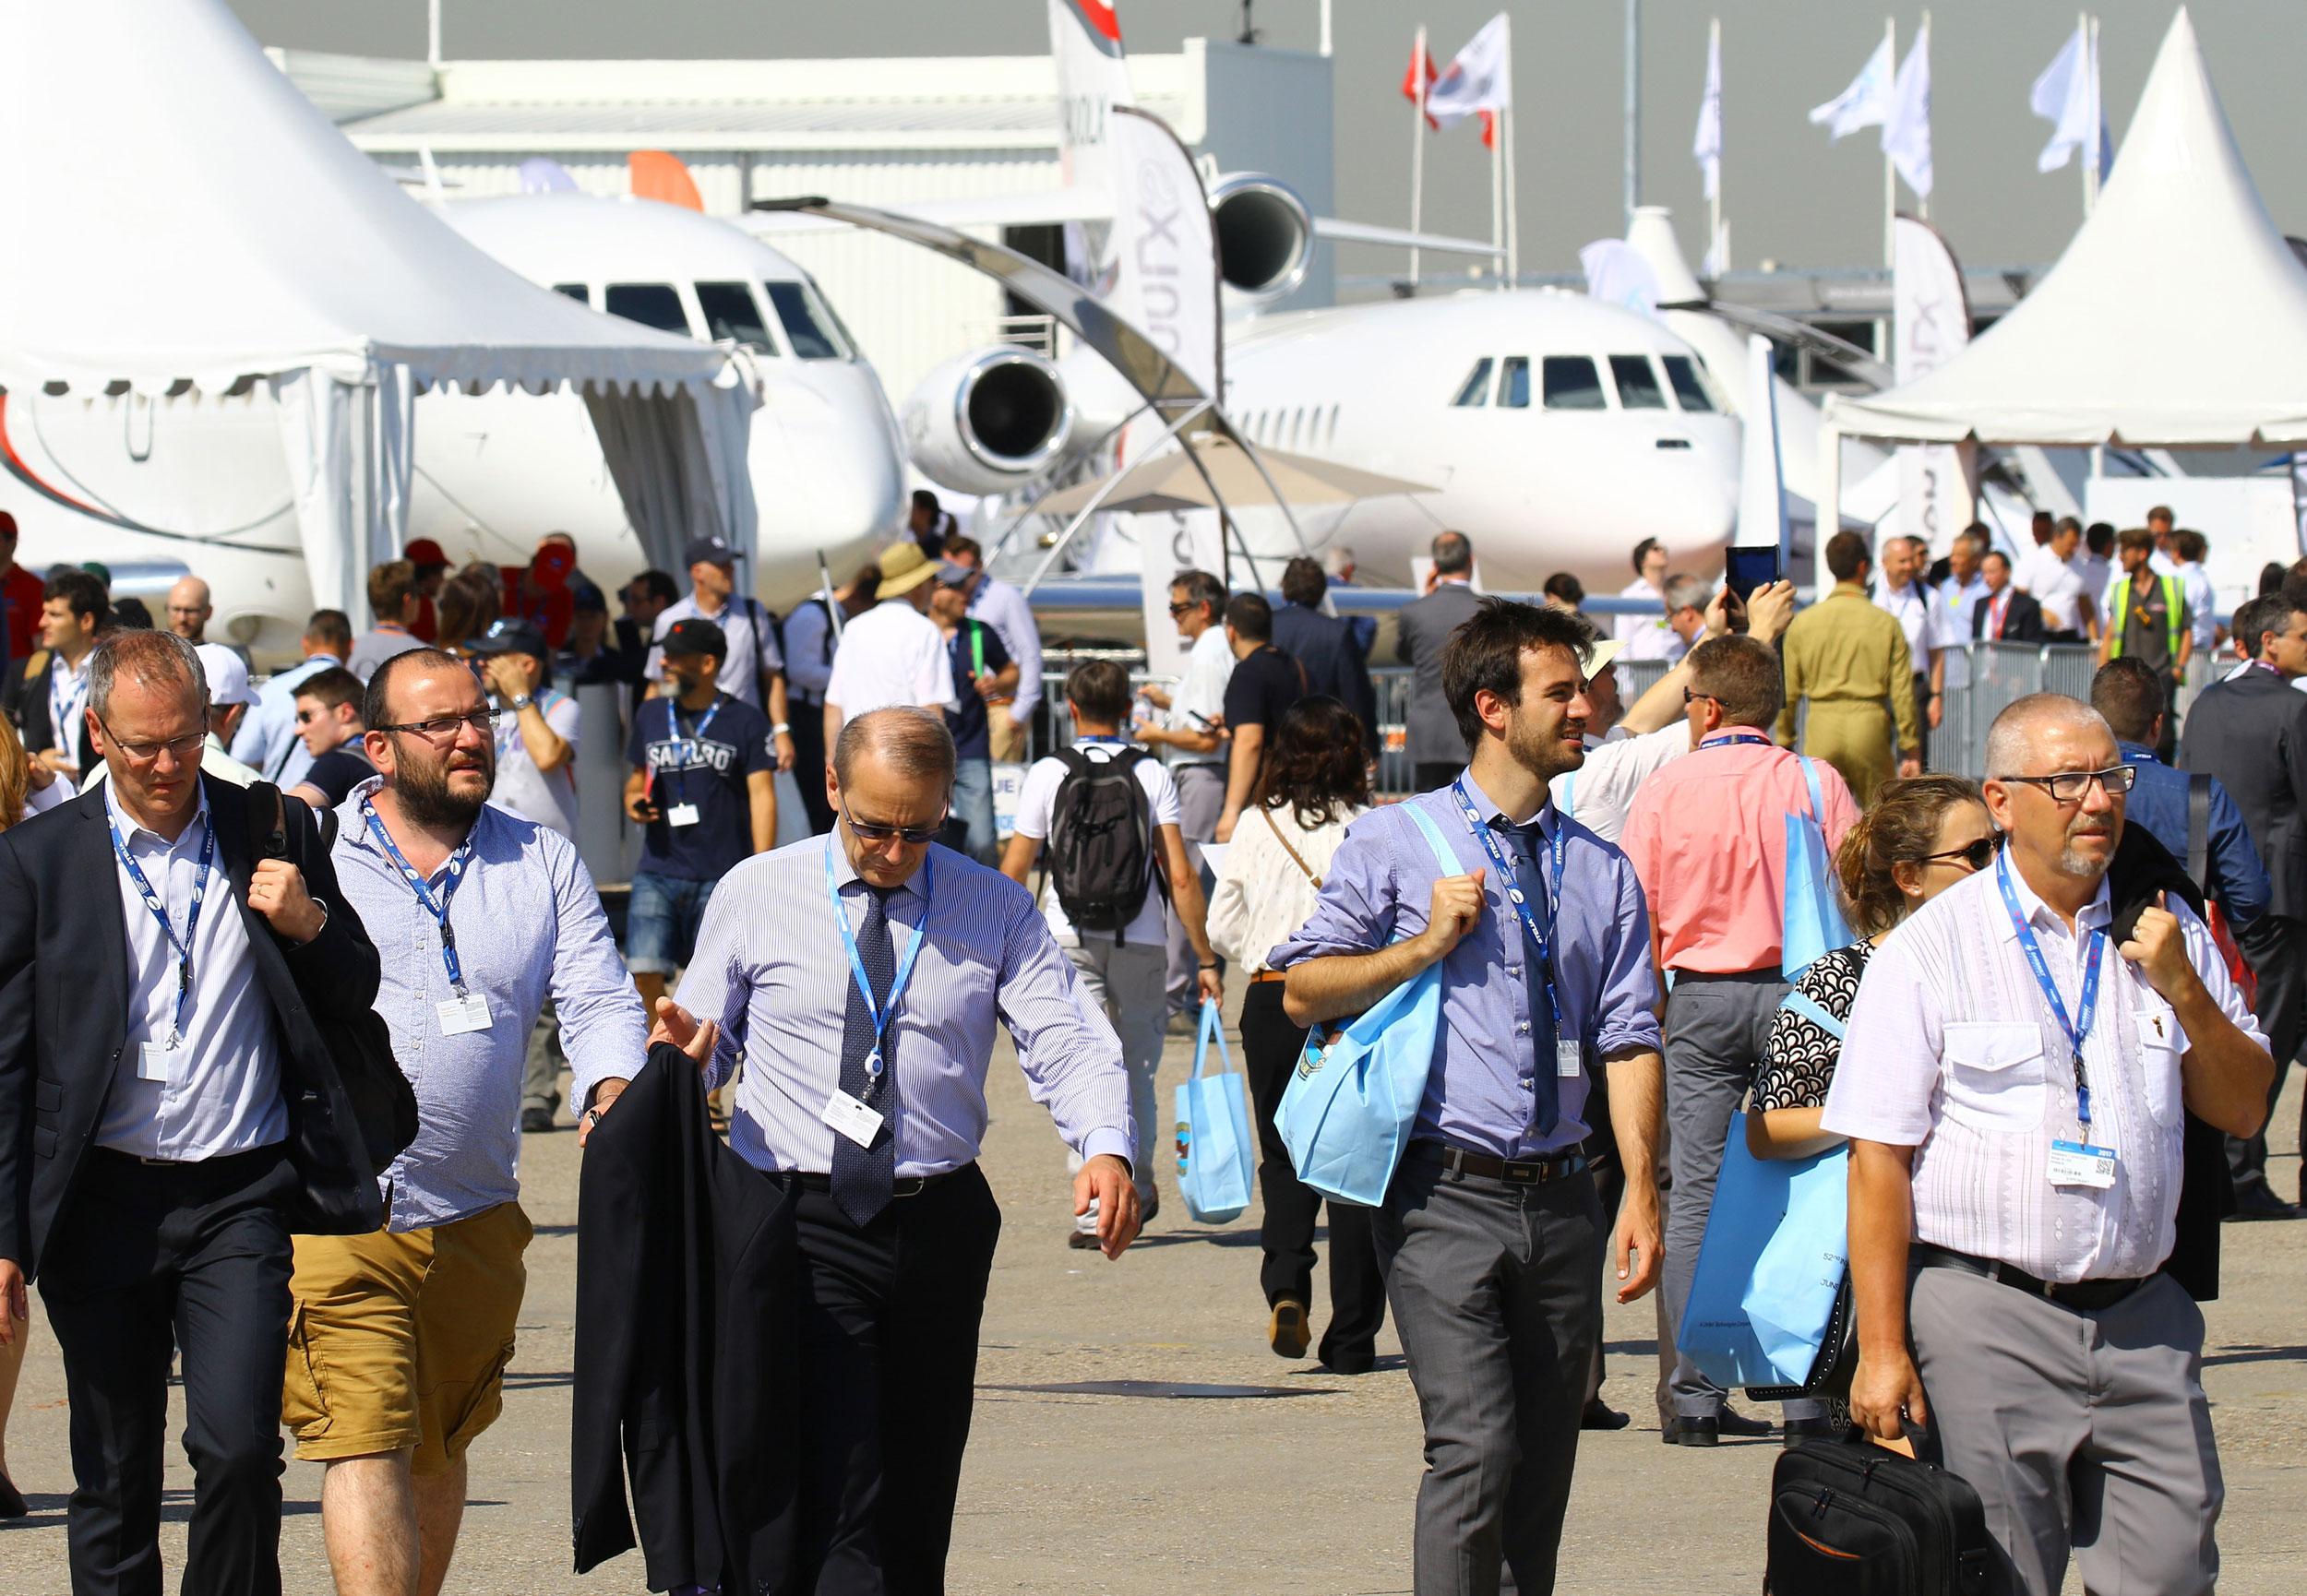 Paris salon swelters and surprises aerospace news for Programme bourget 2017